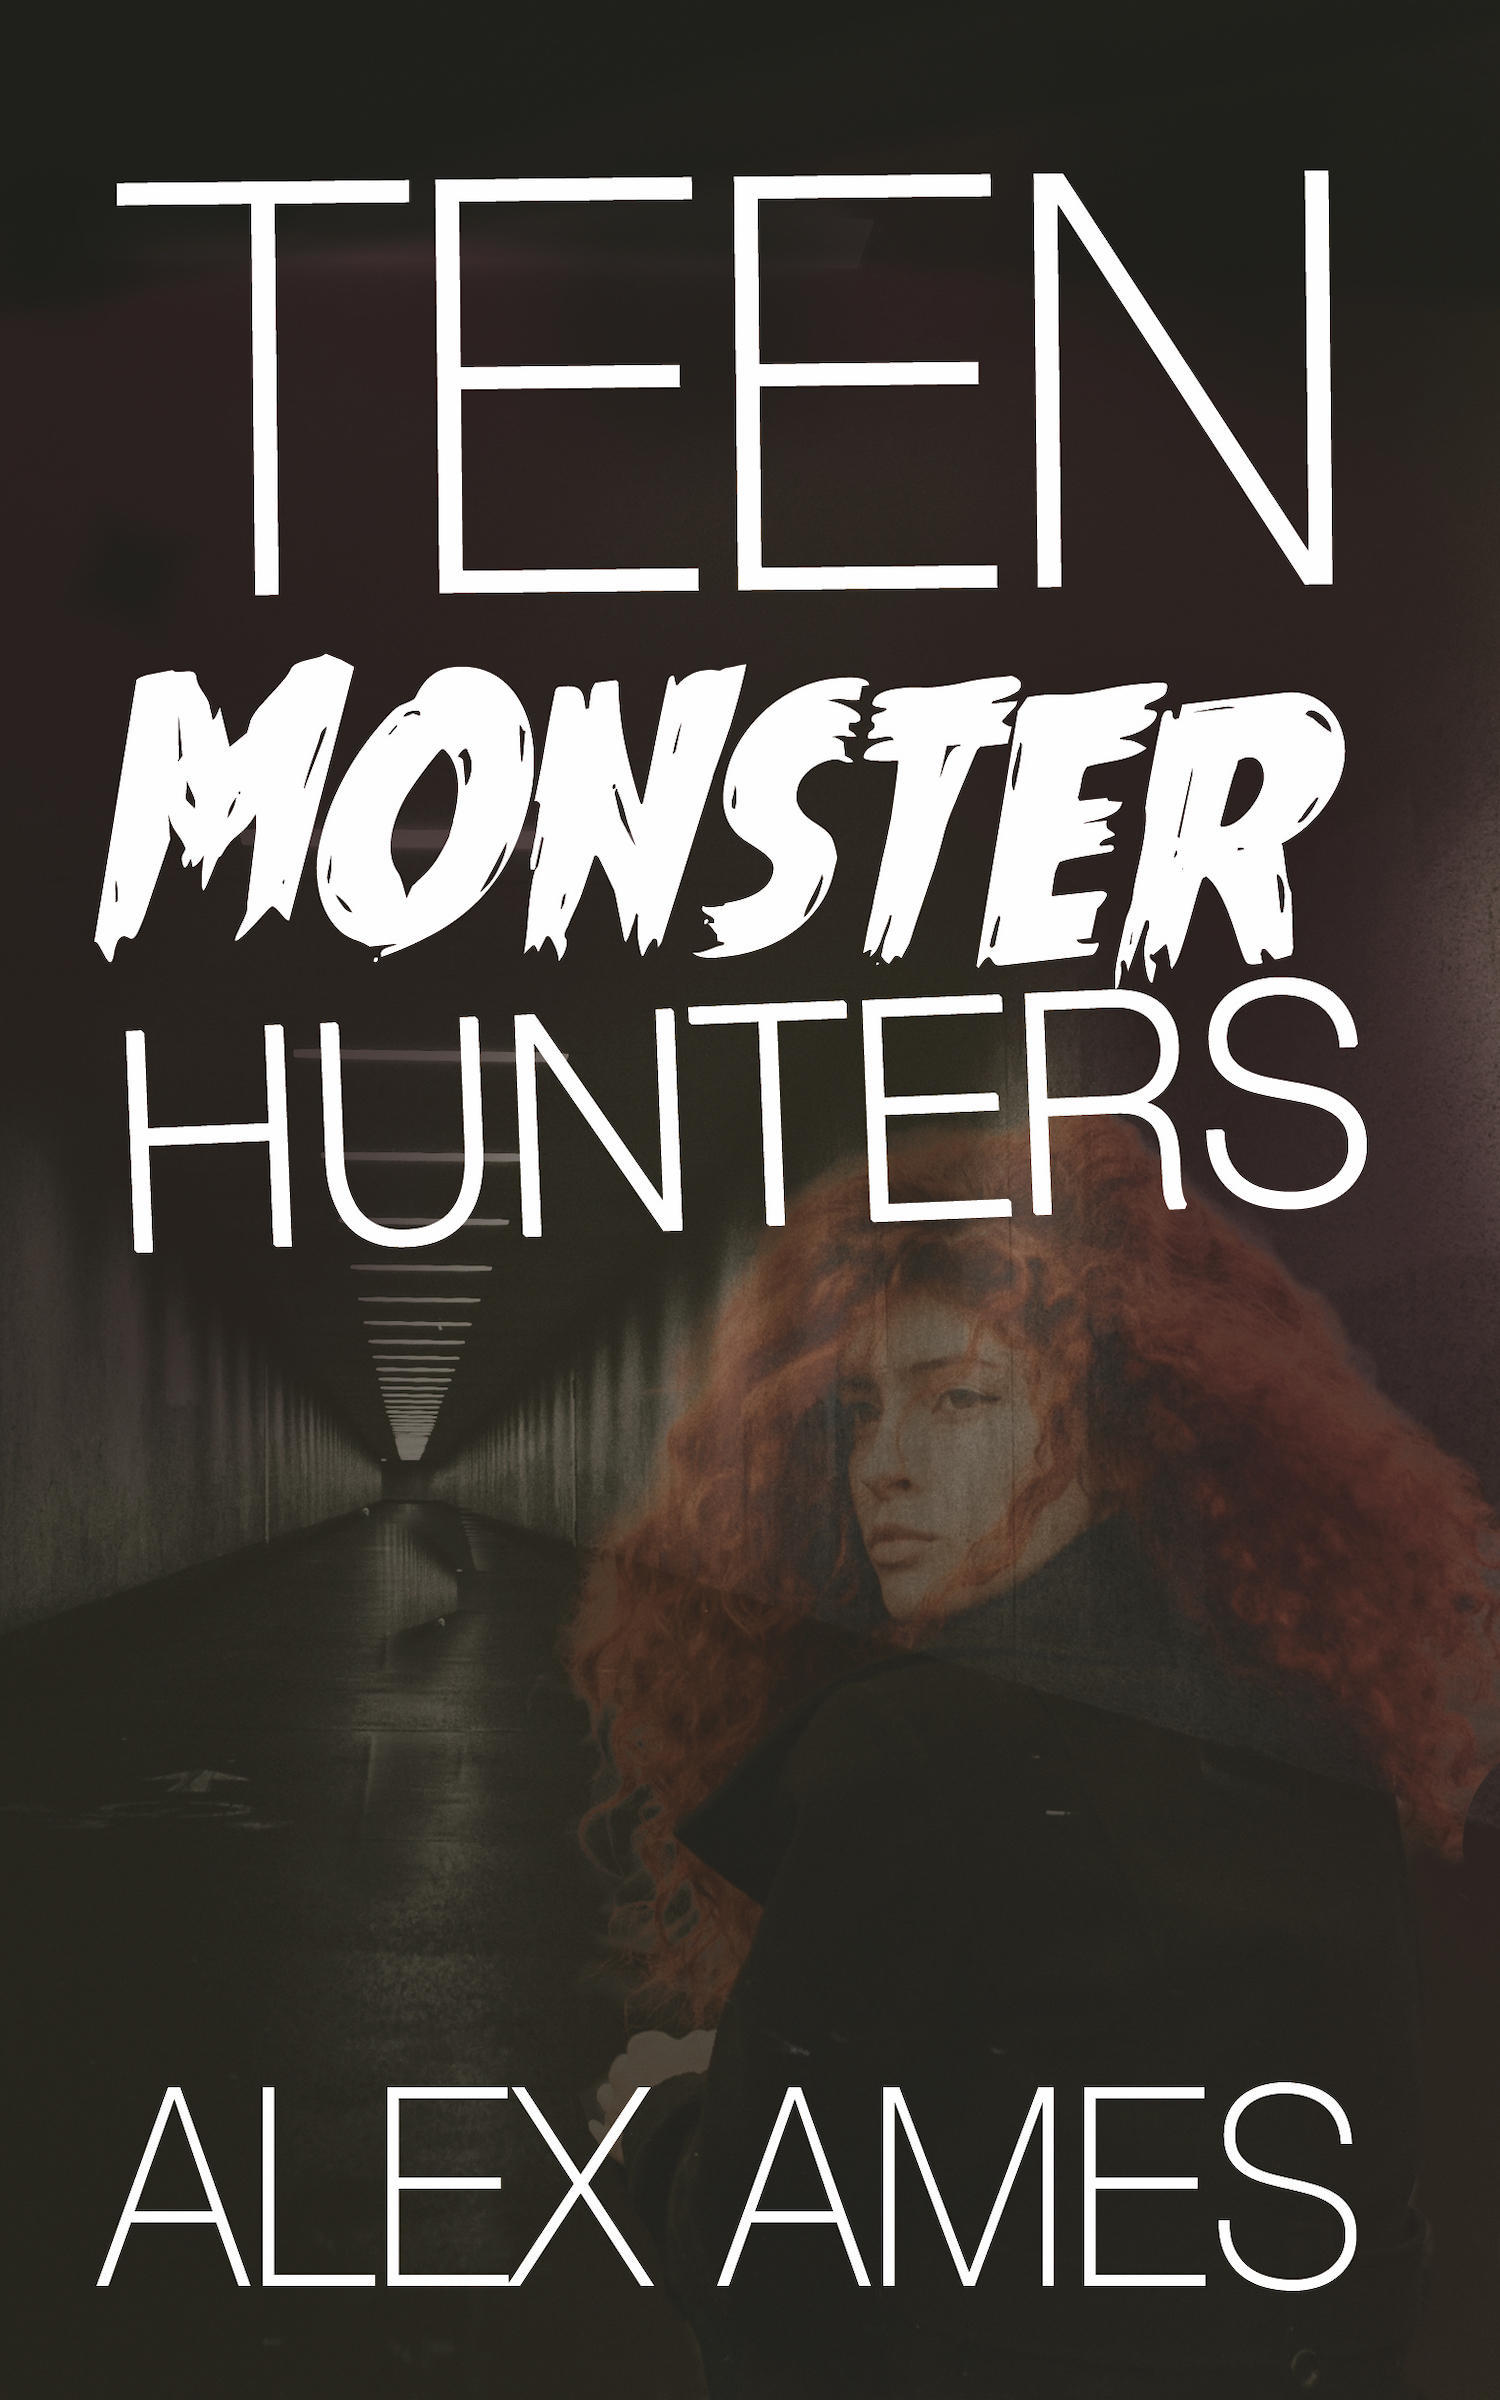 Teen Monster Hunters